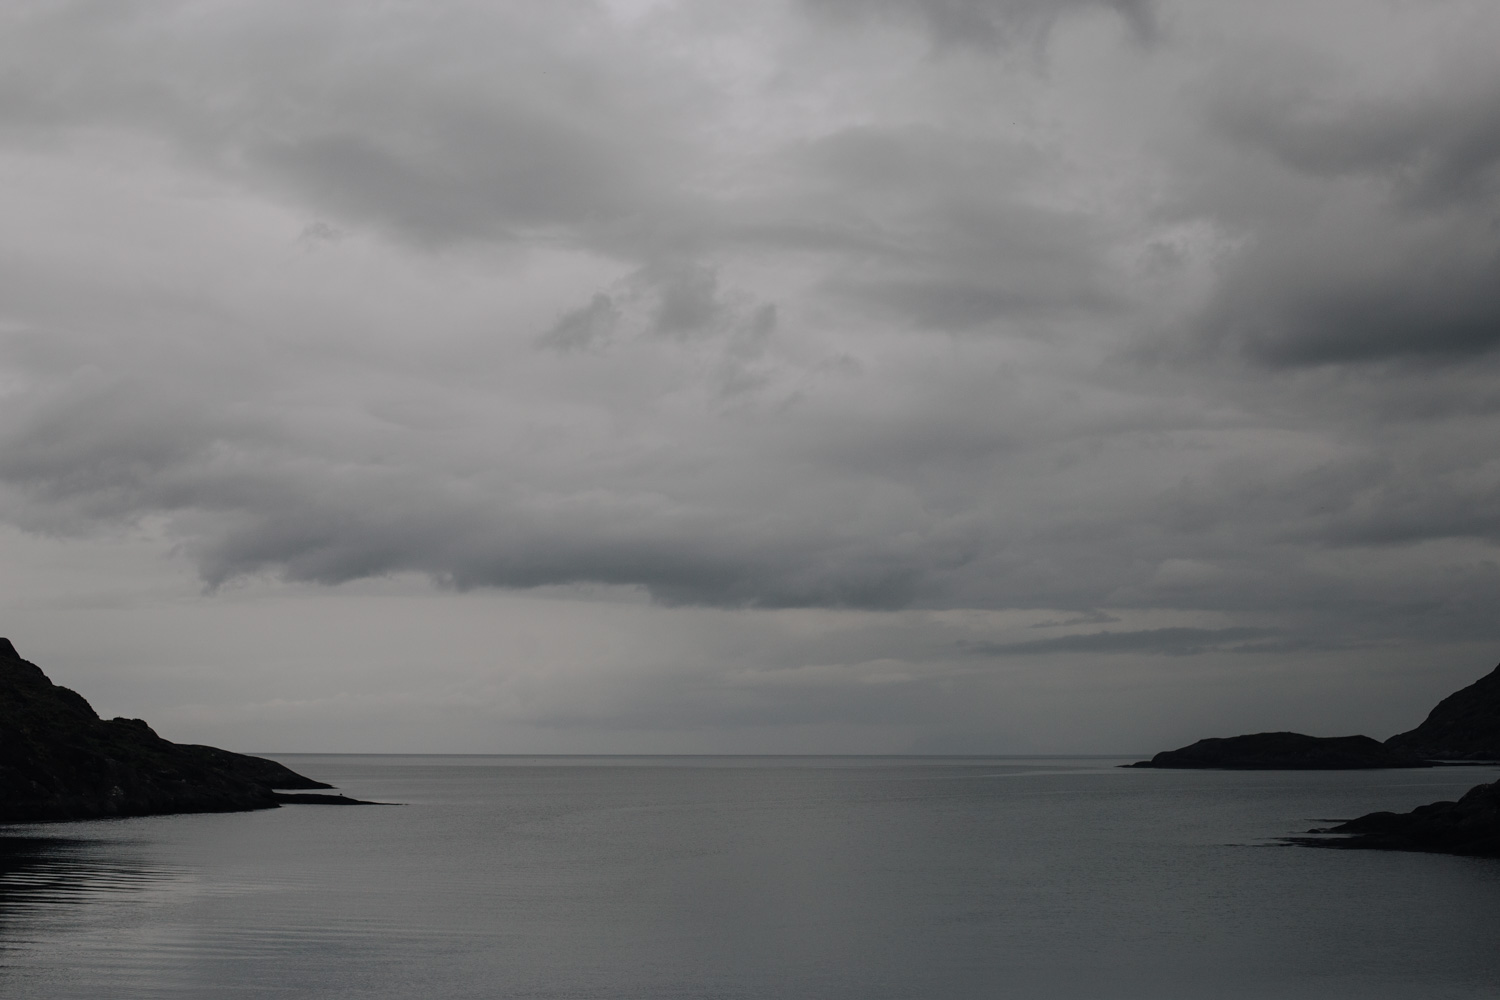 Dark skies over the sea